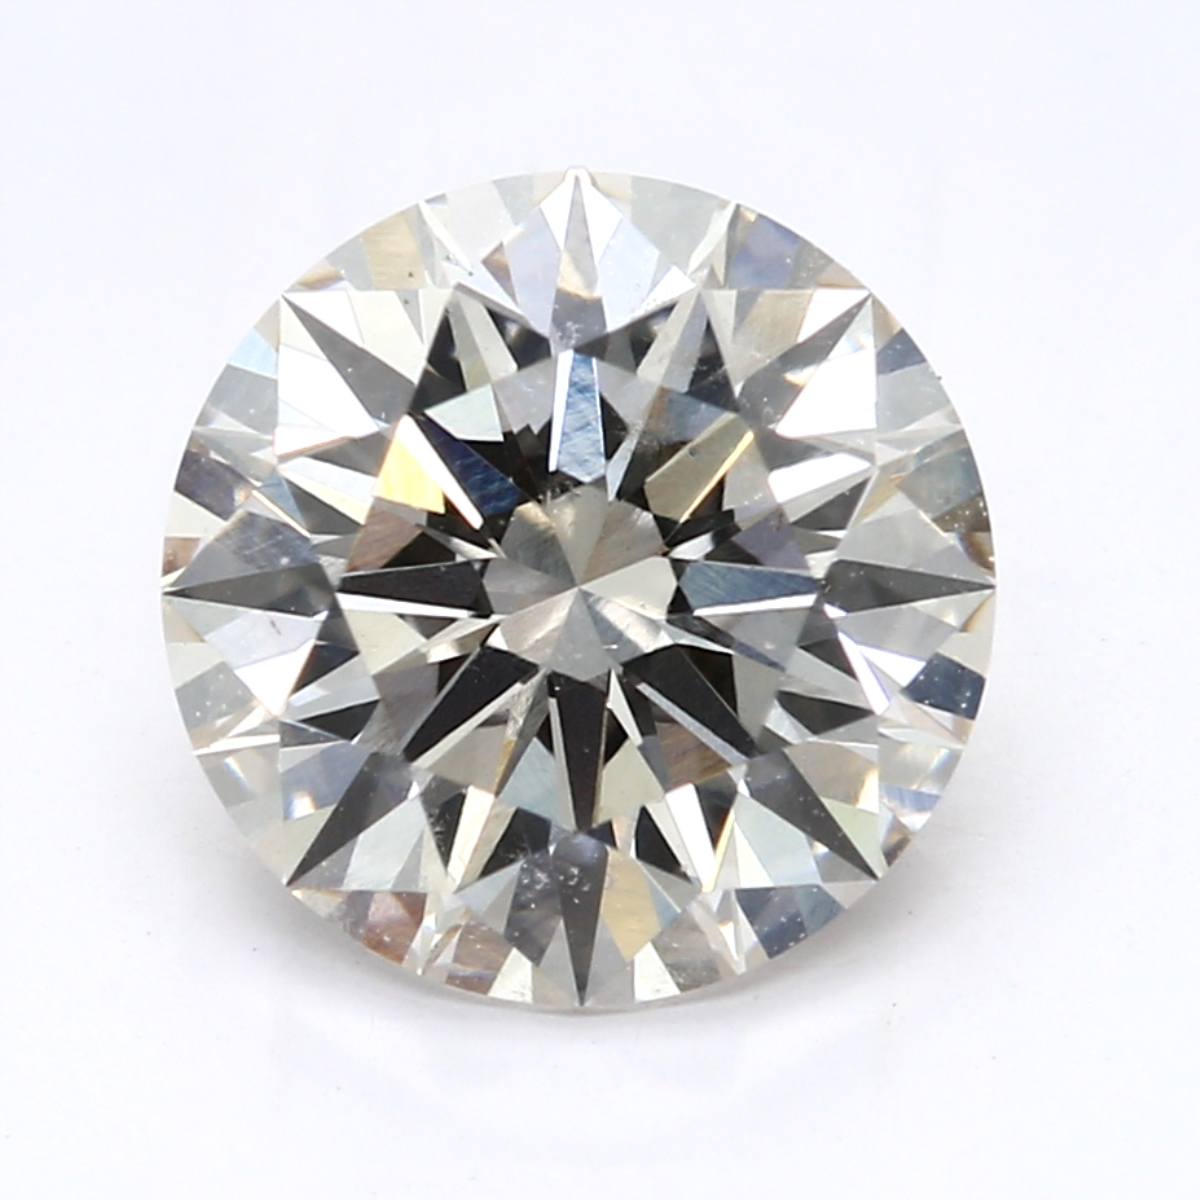 Loose Diamonds Round Cut 1.54 Carat J Color Si1 Clarity Sku Lg7529407